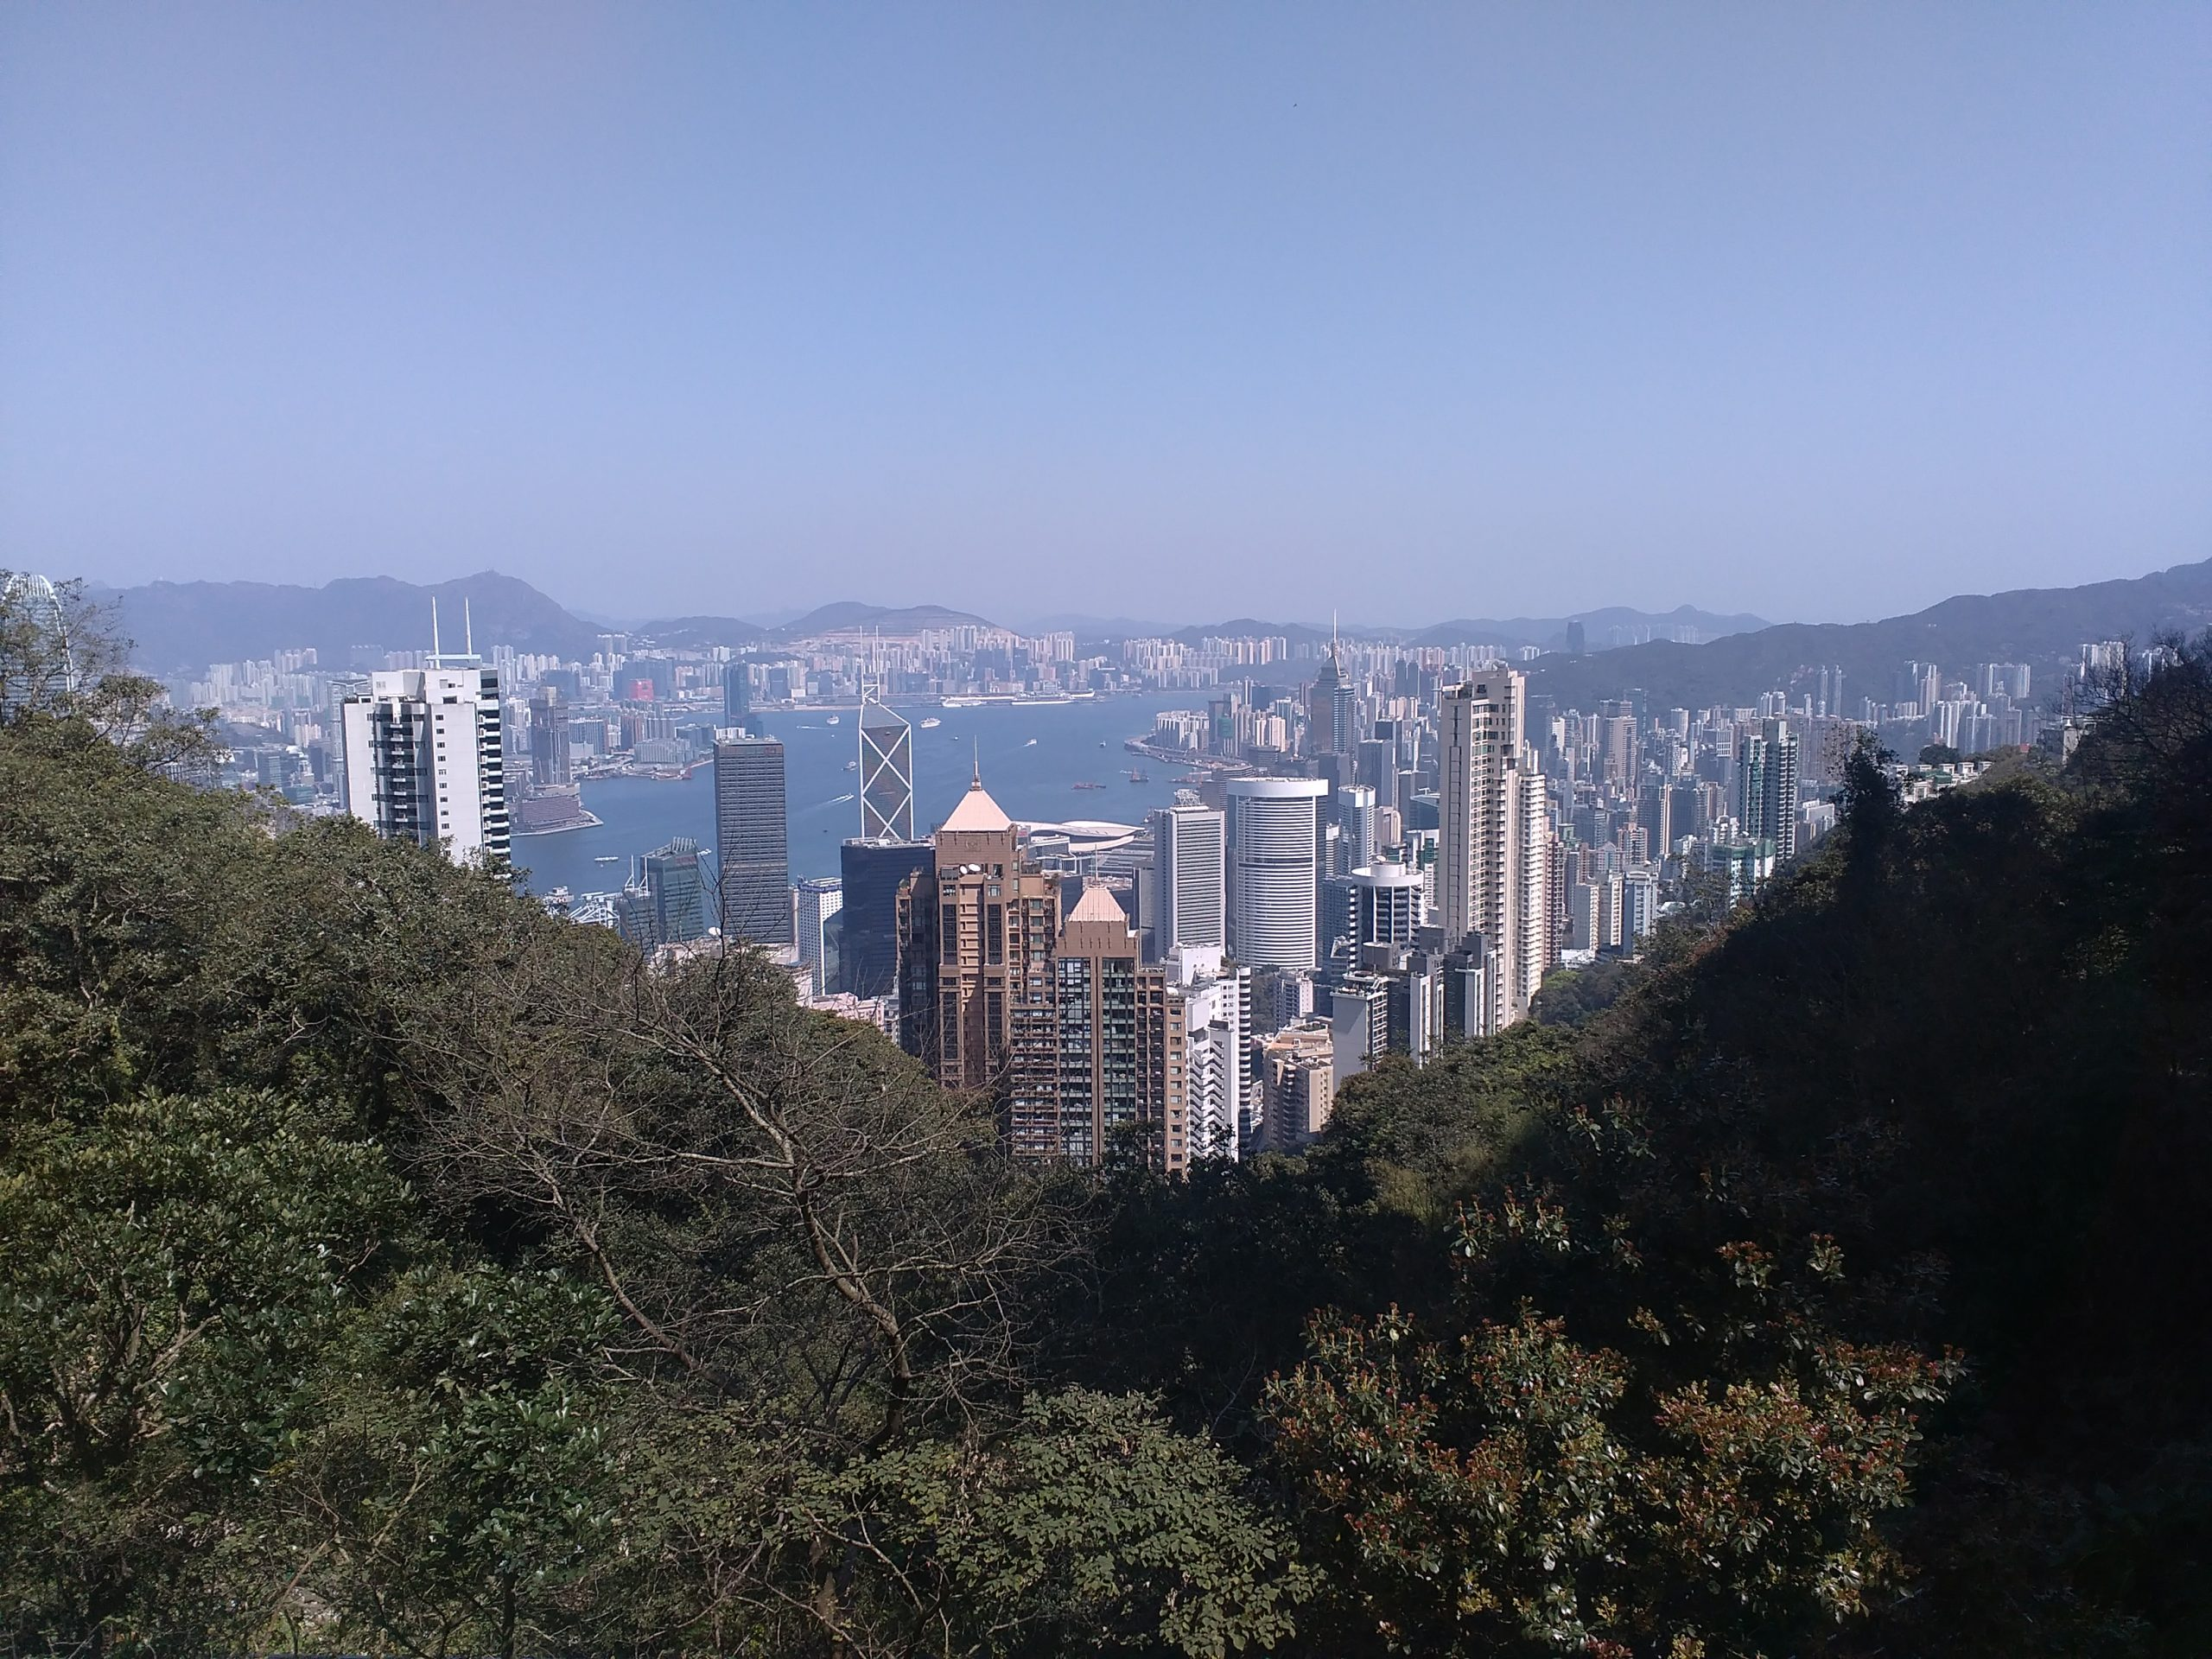 Hong Kong is becoming a major orienteering hub as the sport becomes trendier in Asia.